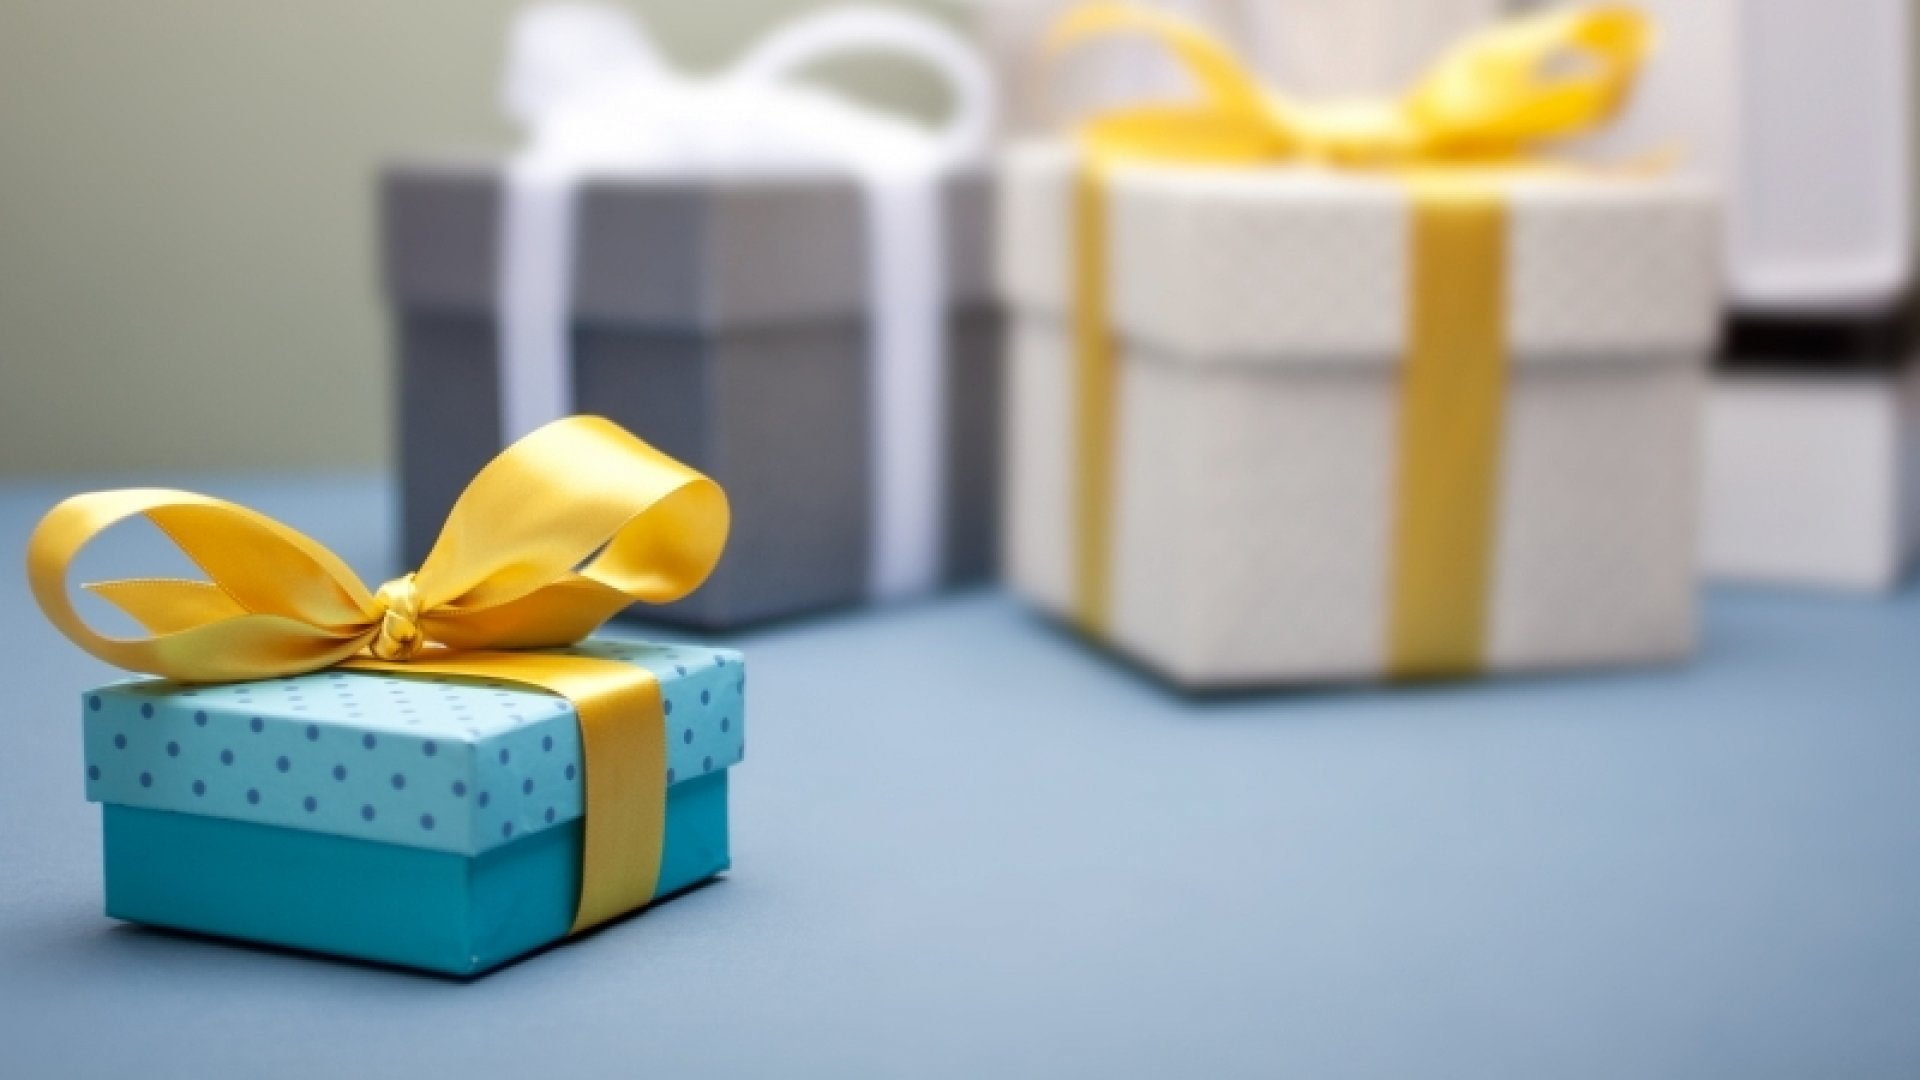 The Most Creative Gift You Can Give Your Employees This Holiday